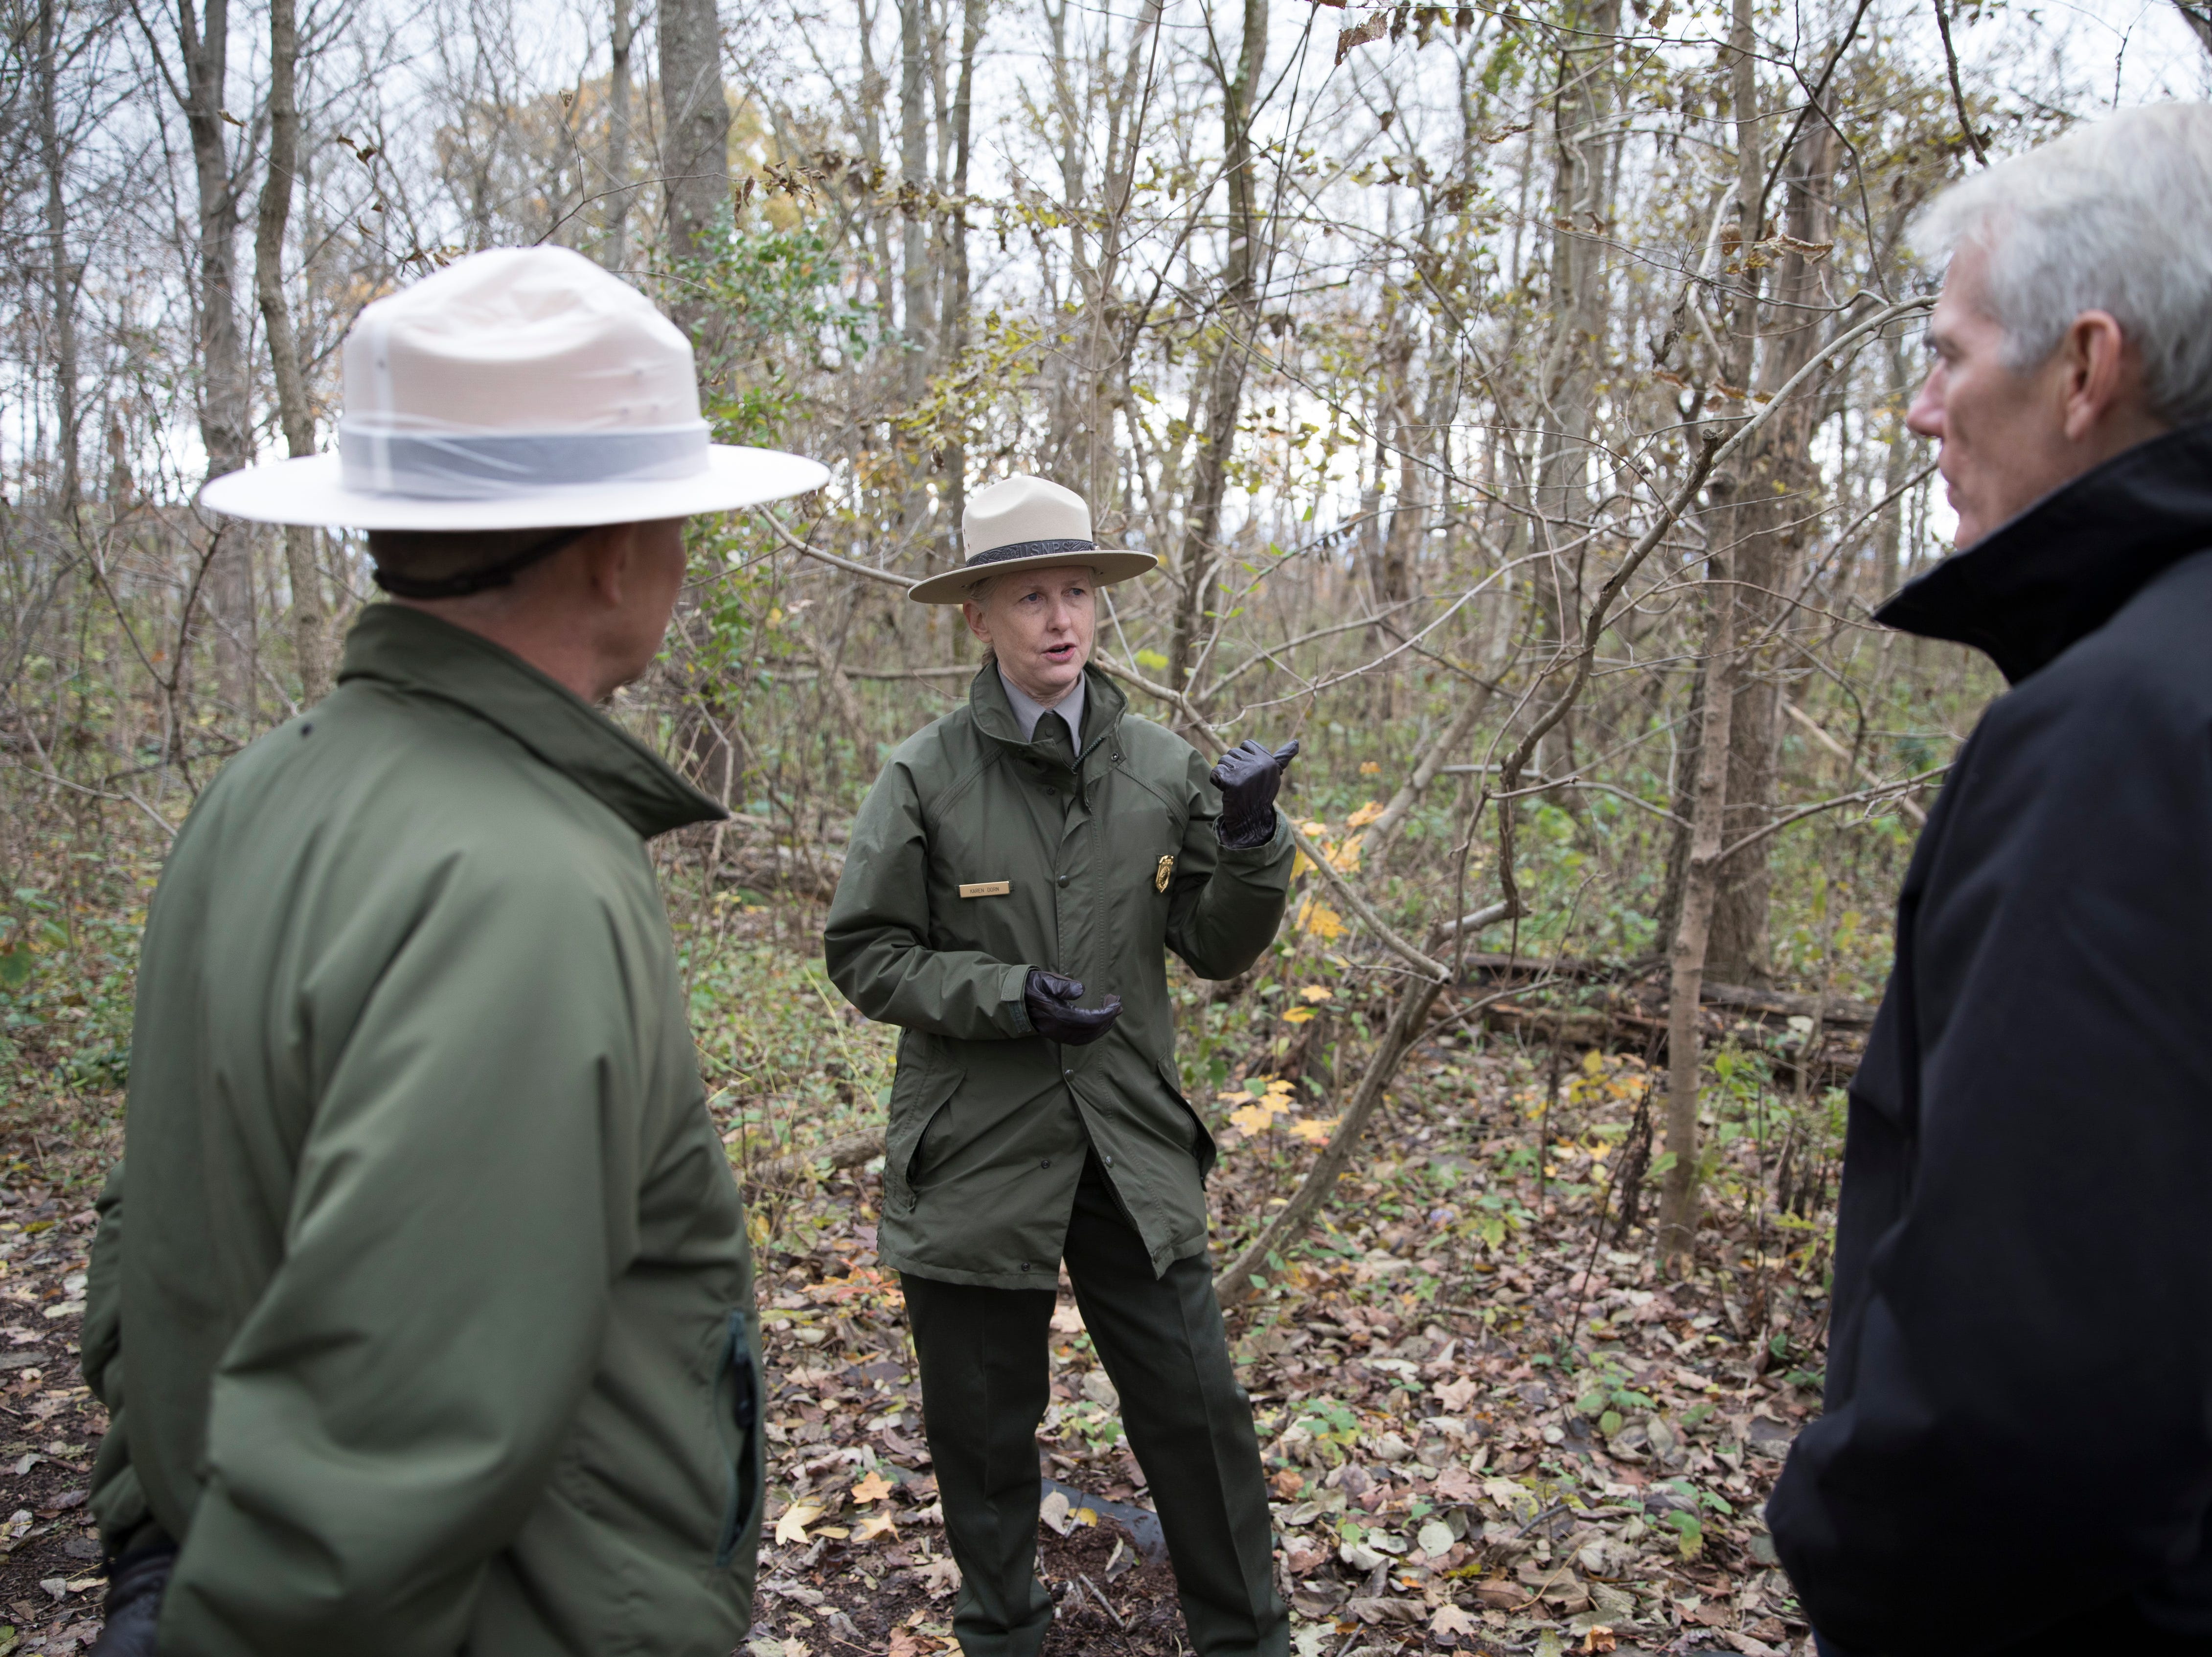 New Hopewell Culture National Historical Park superintendent Karen Dorn talks to Sen. Portman about the funding needs of the park and the importance of preserving such a crucial part of local history.